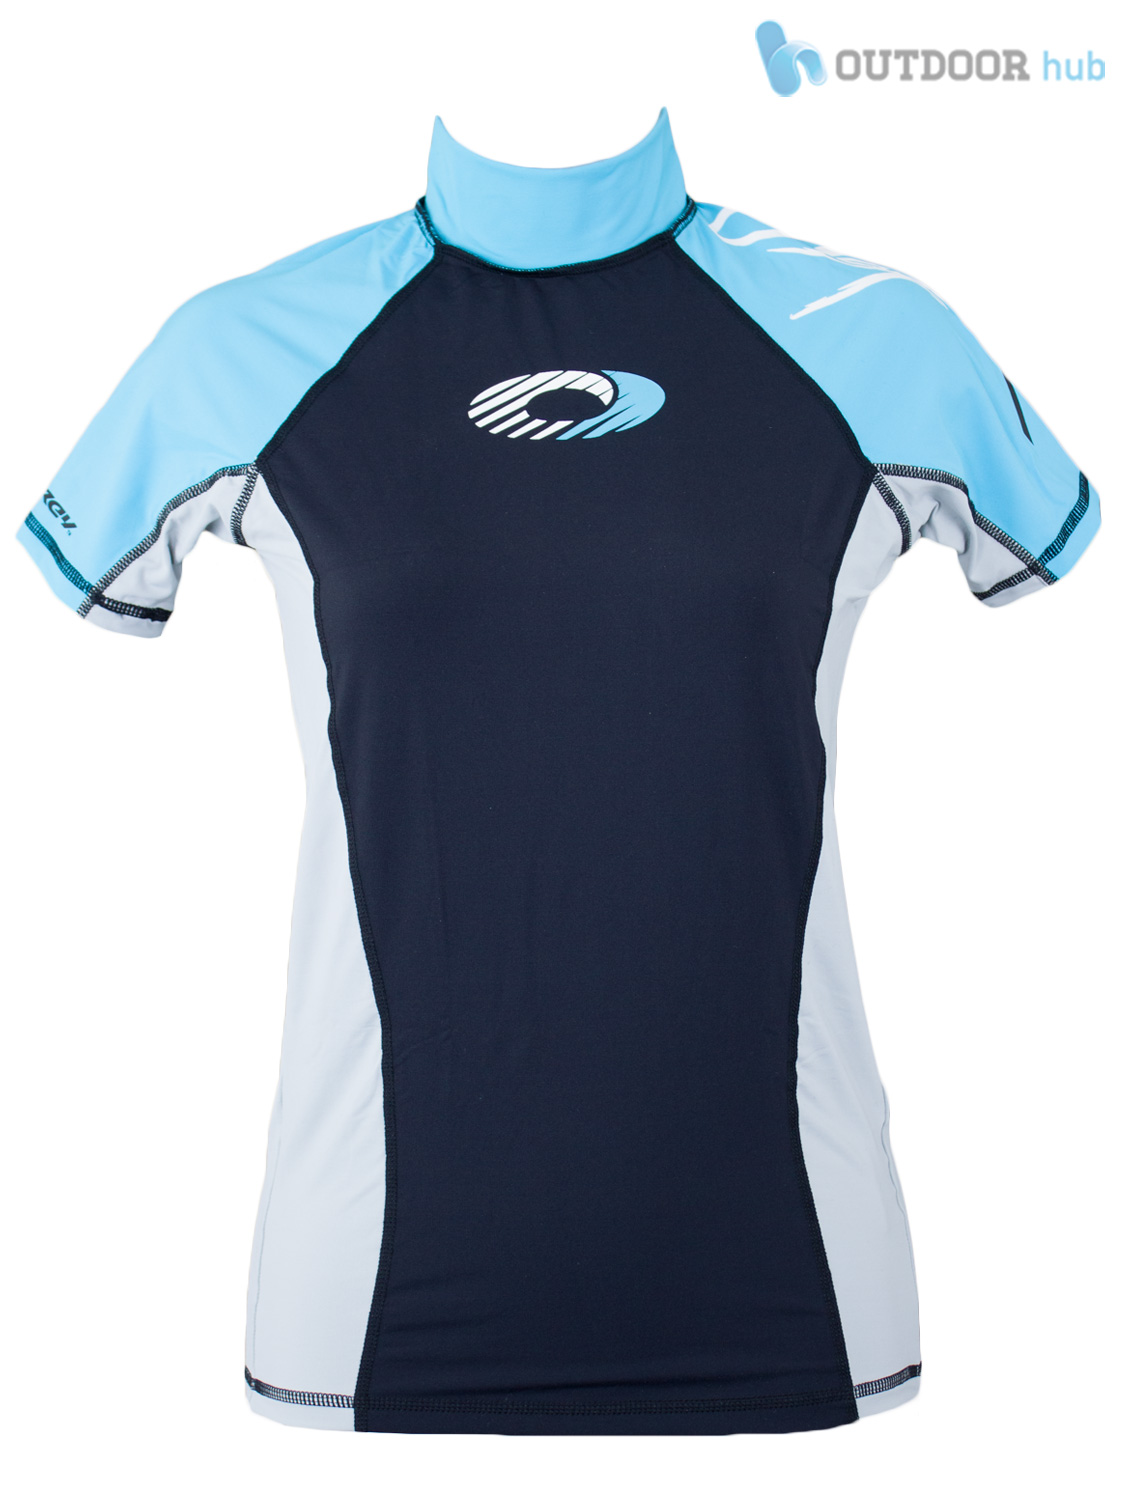 Osprey-Ladies-Short-Sleeve-Rash-Vest-Womens-Surf-T-Shirt-UV-50-Protection-Guard thumbnail 11